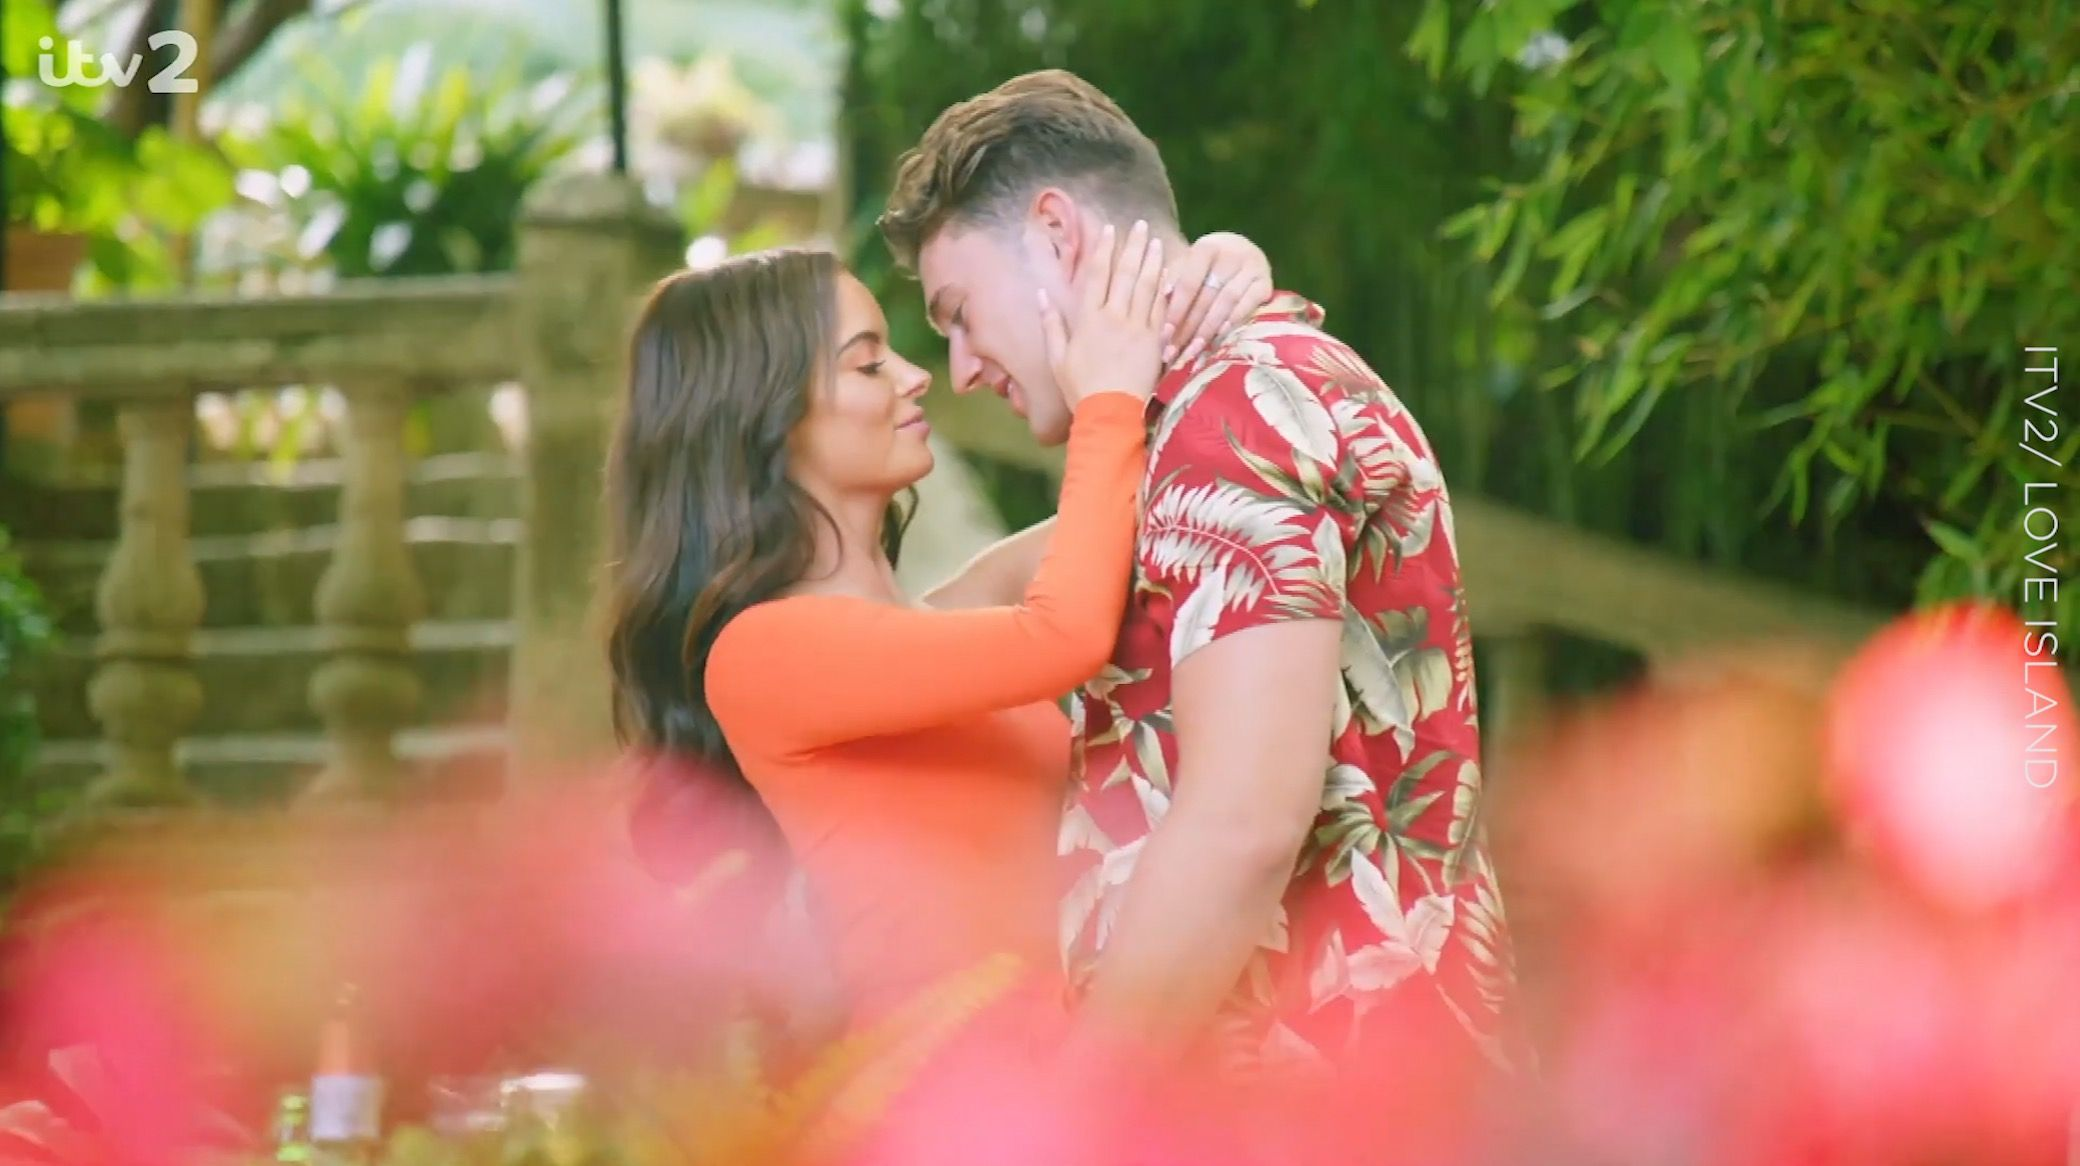 Love Island's Maura just shut down romance rumours about her and fellow contestant Greg O'Shea